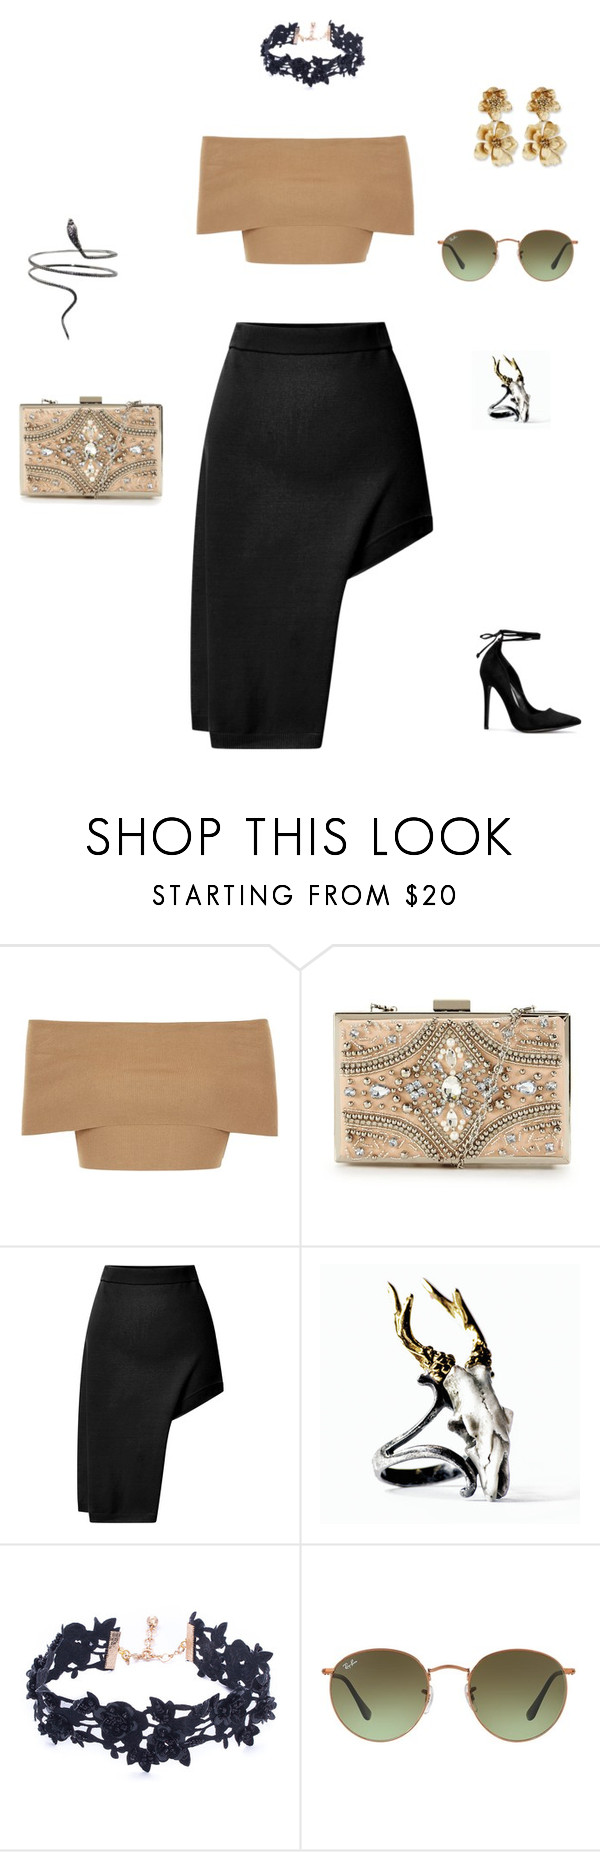 """""""Desert Flower"""" by hrockholt ❤ liked on Polyvore featuring Blue Vanilla, Forever Unique, Opening Ceremony, Macabre Gadgets, Vanessa Mooney, Ray-Ban and Oscar de la Renta"""